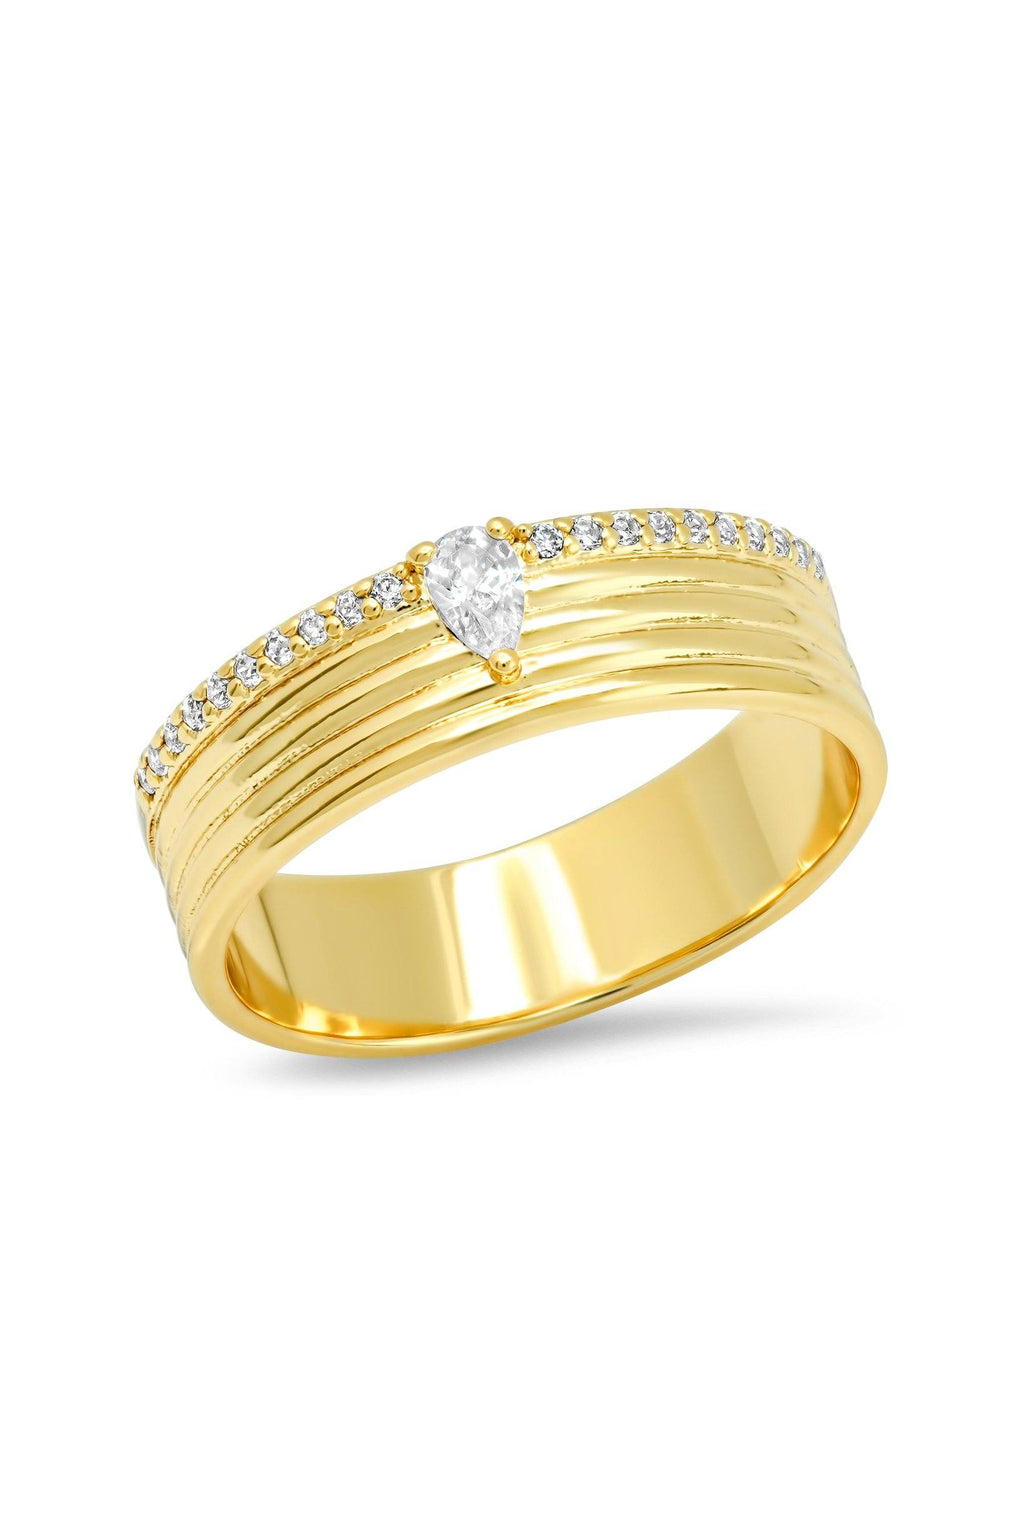 TAI | Gold Ribbed Ring + CZ Accents